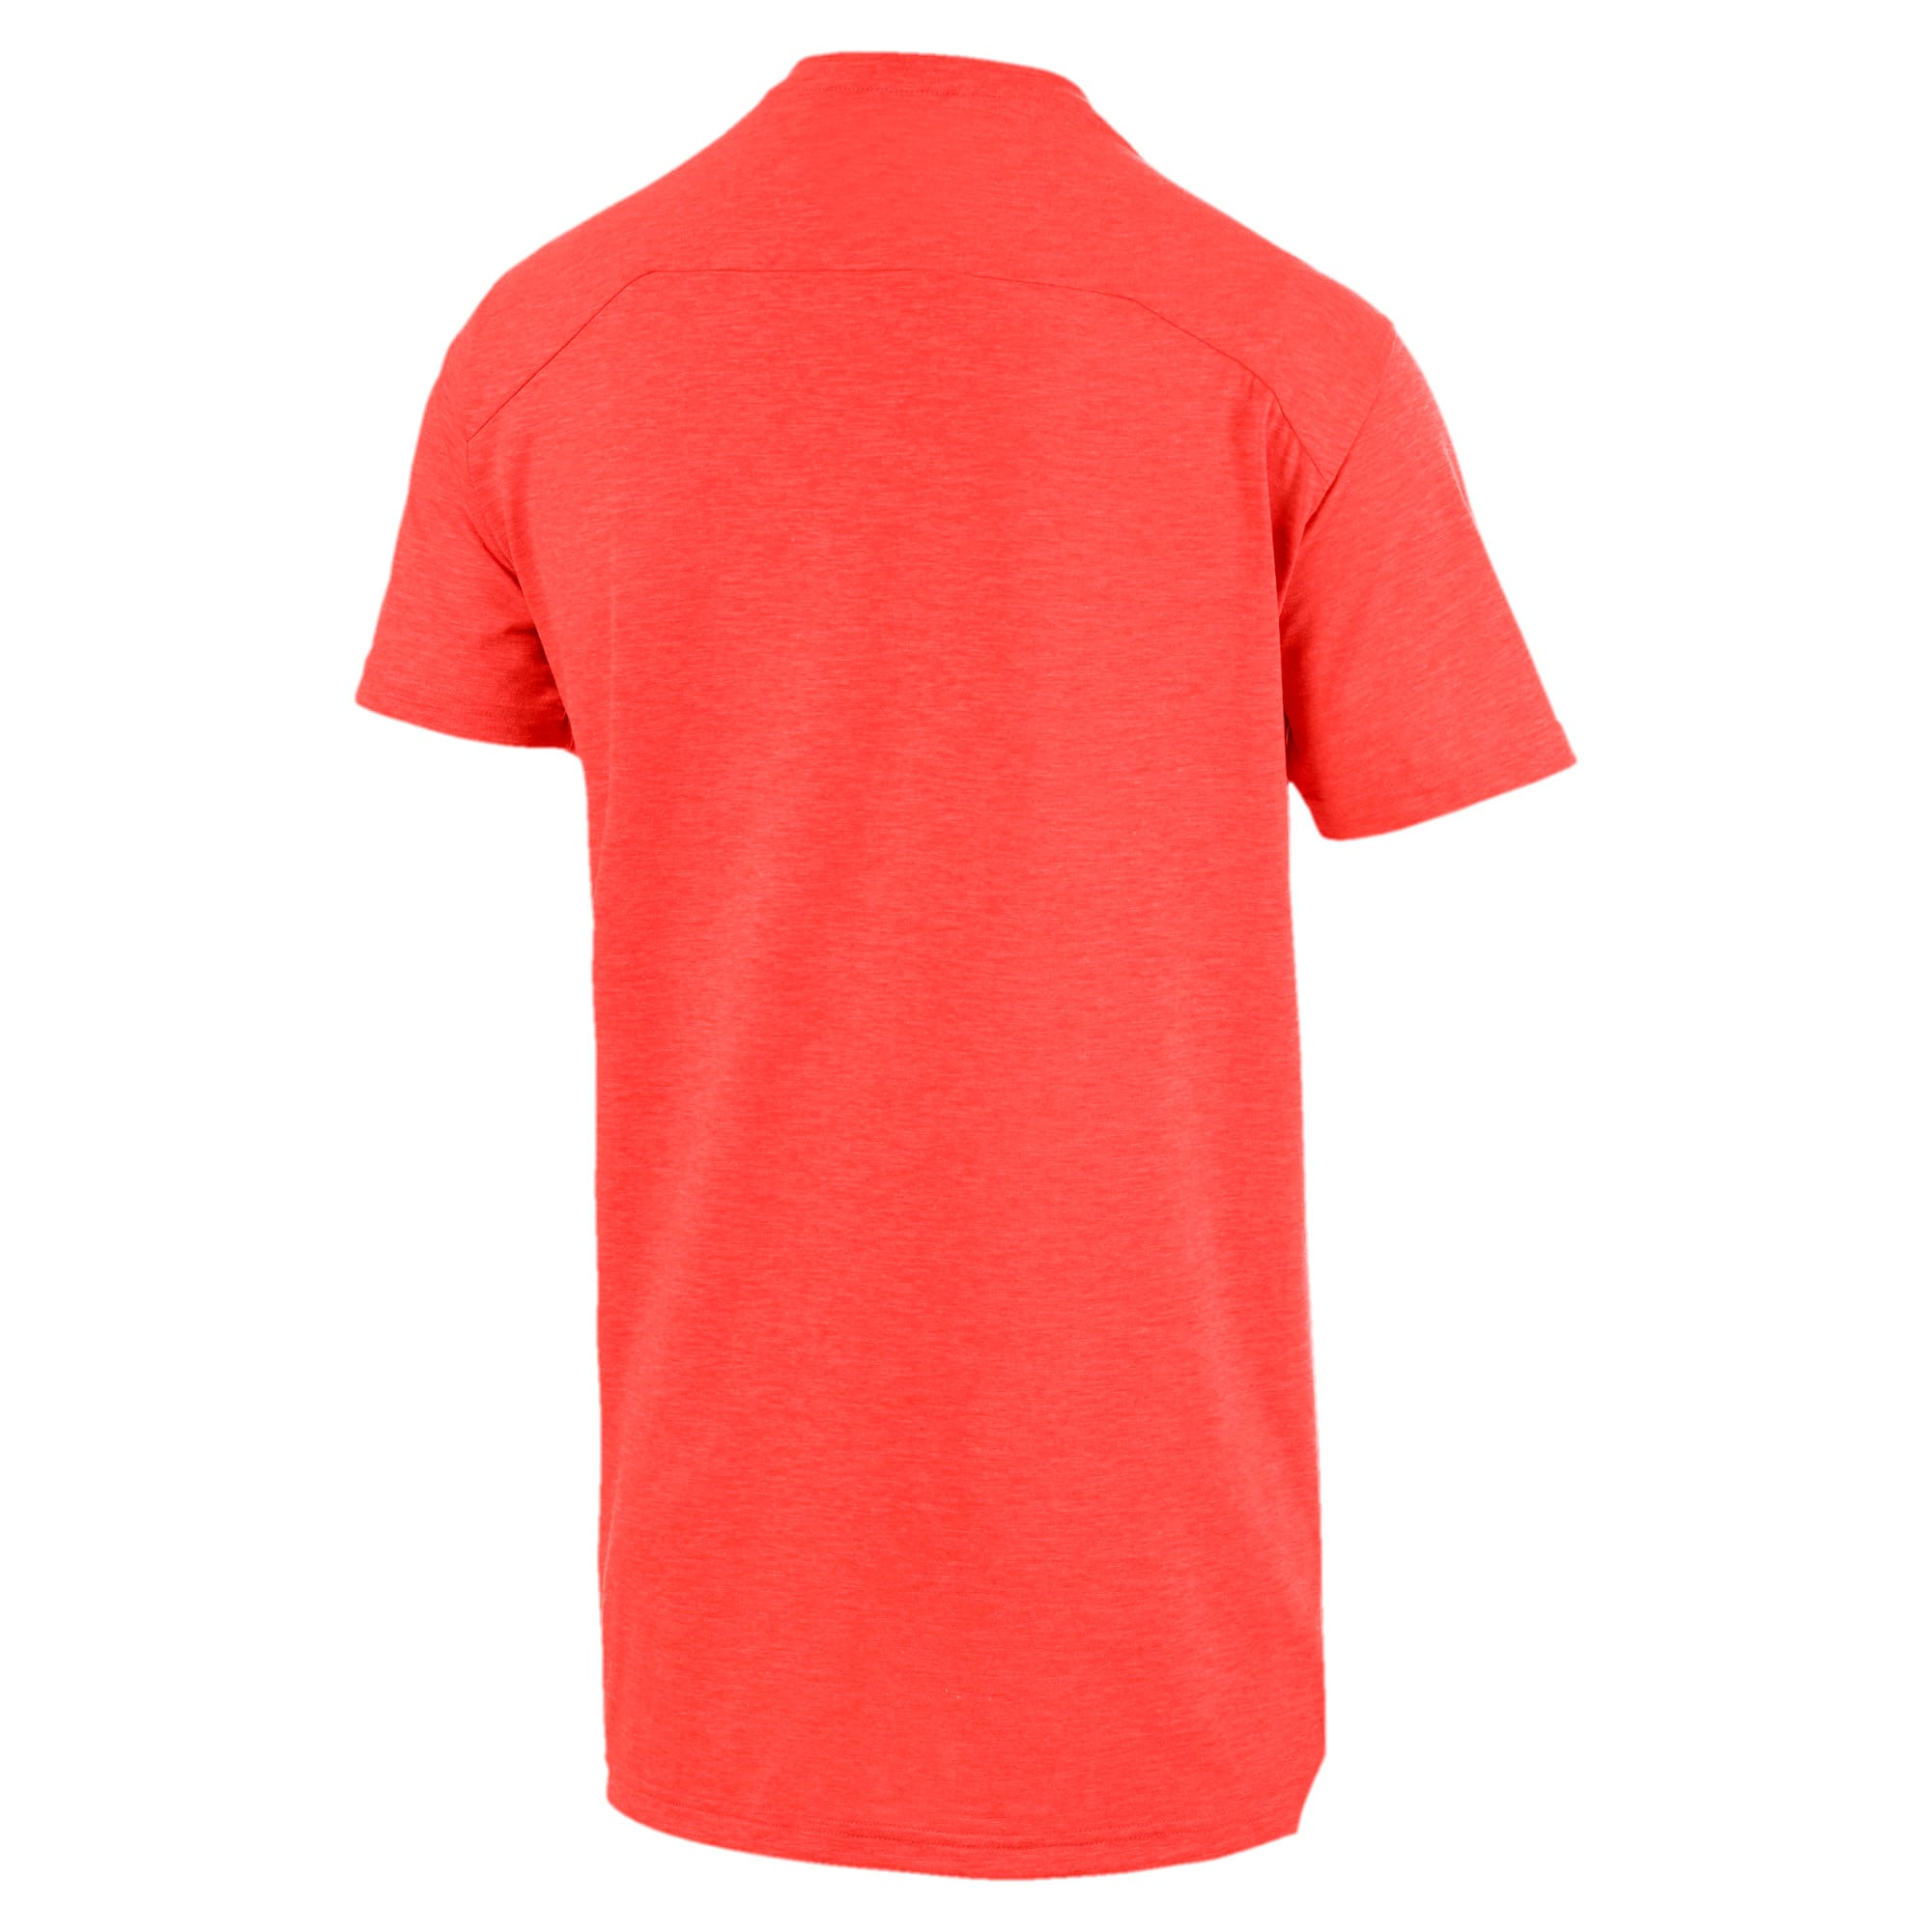 Thumbnail 5 of Energy Short Sleeve Men's Training Tee, Nrgy Red Heather, medium